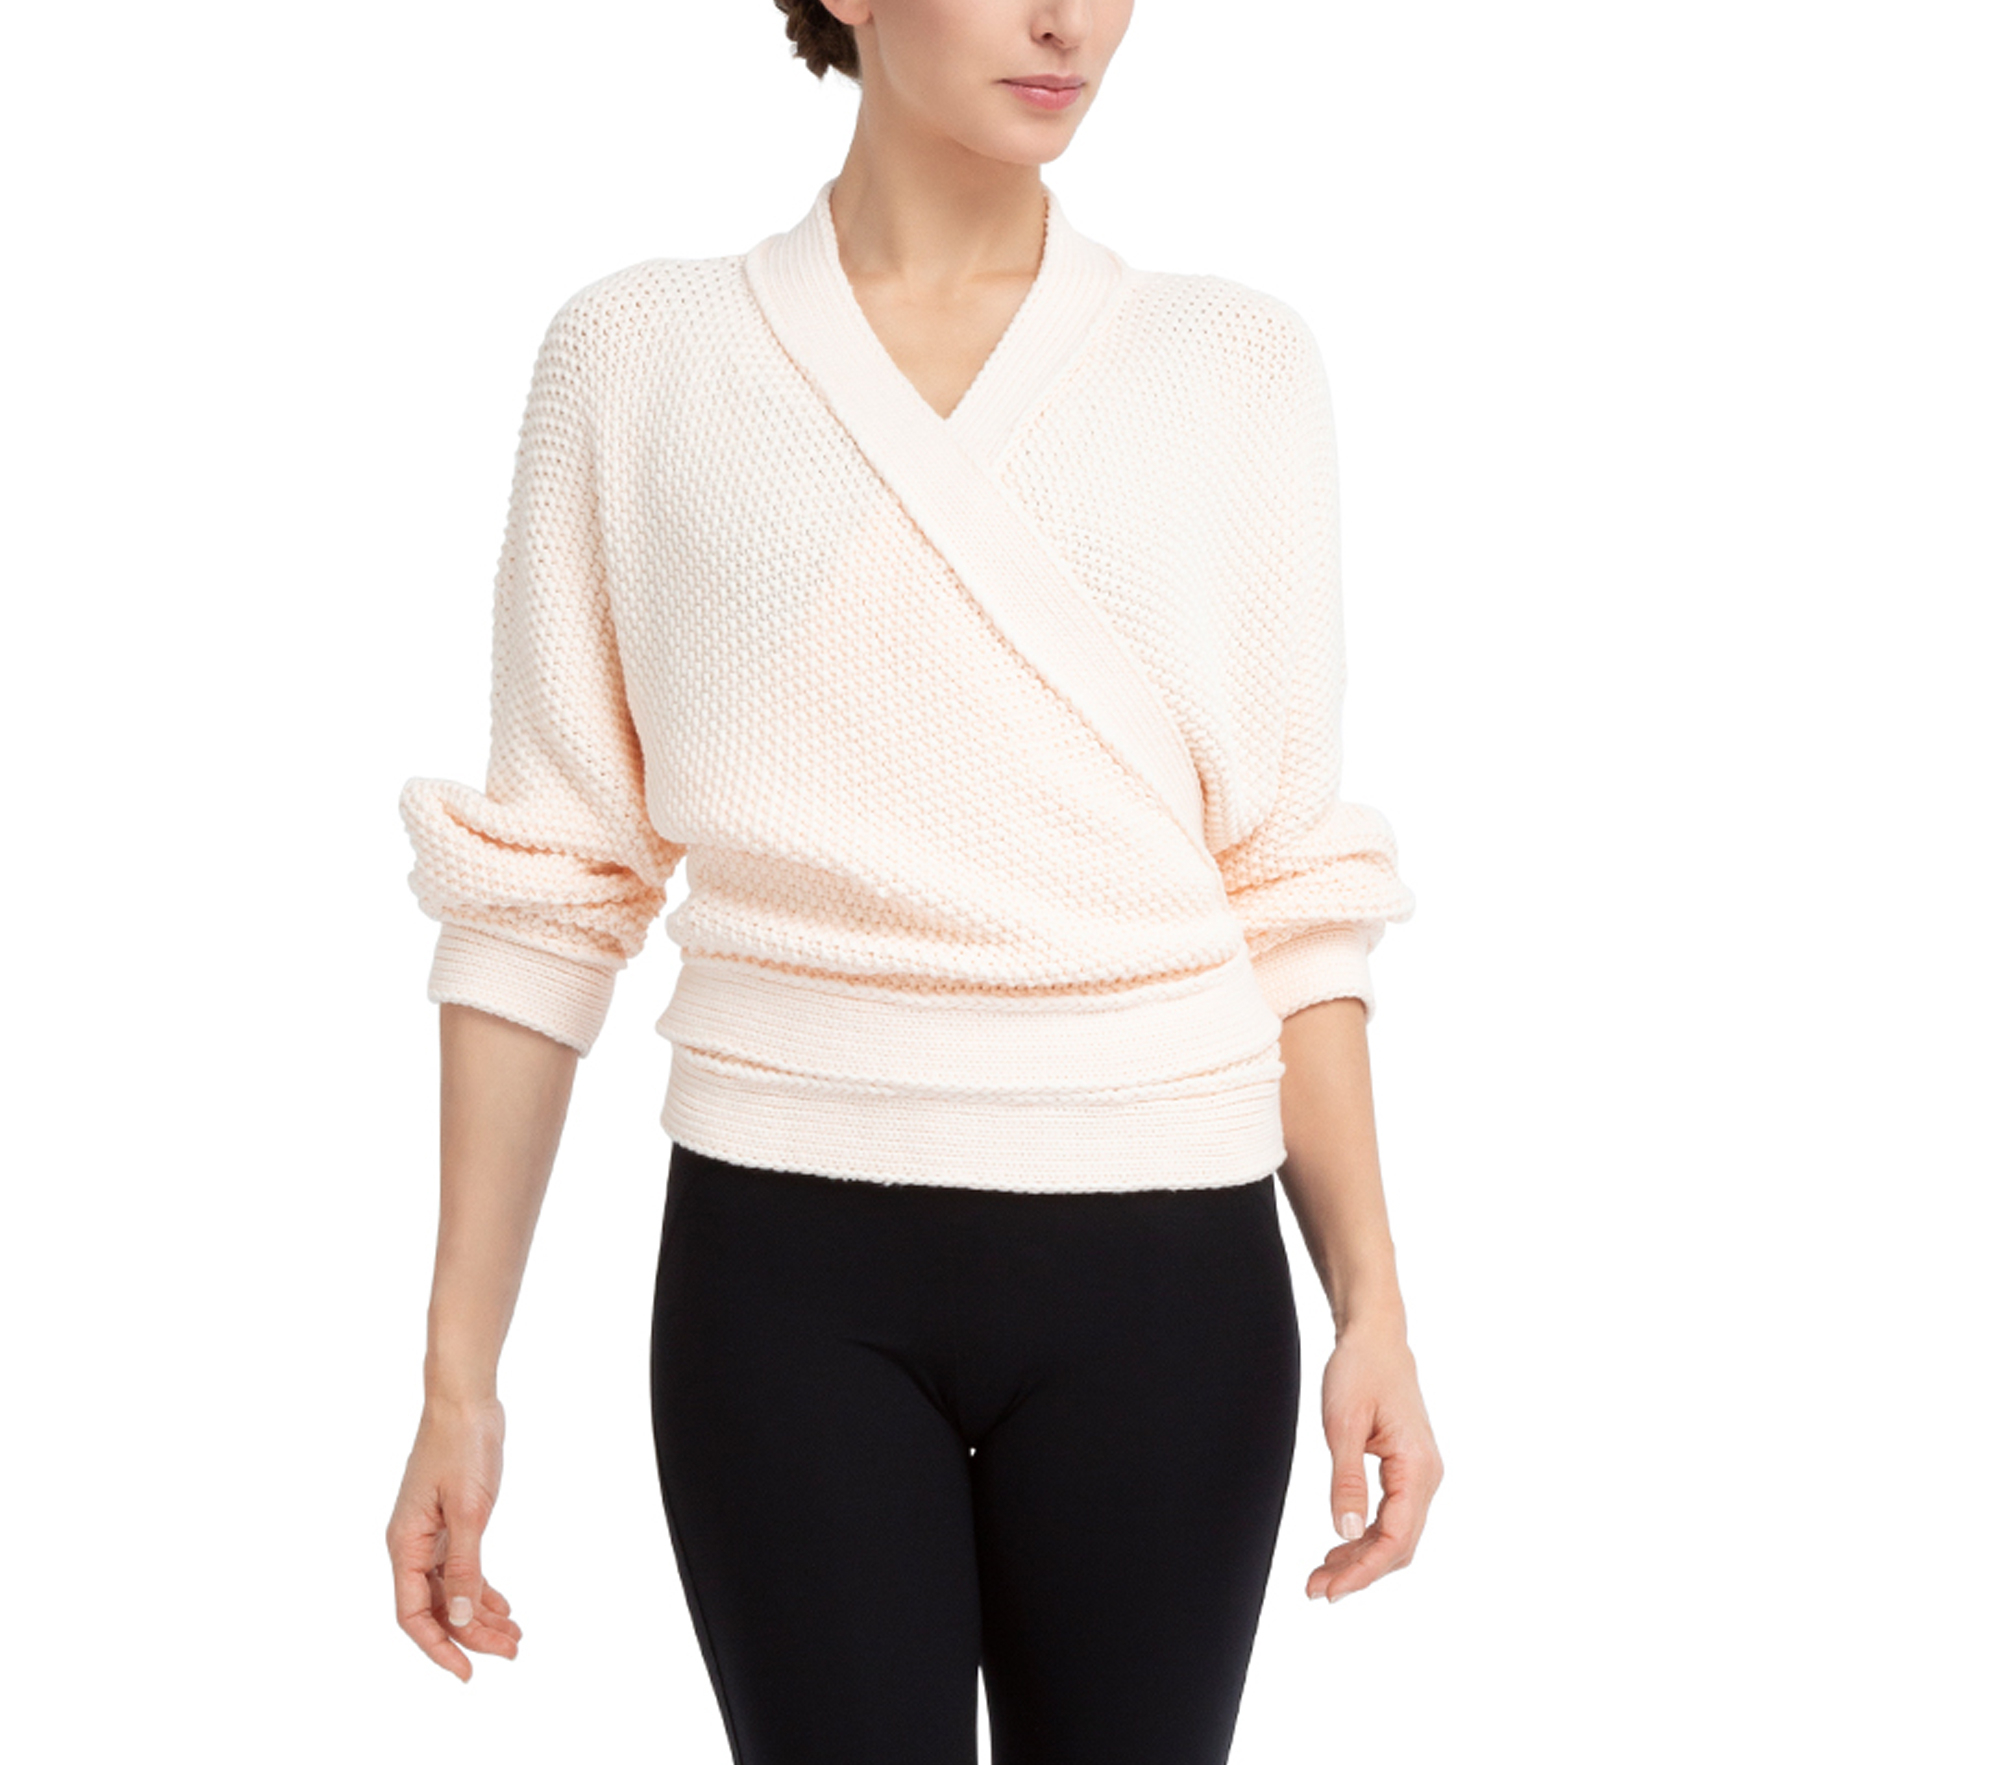 Fancy Knit Wrap Over by Repetto Paris